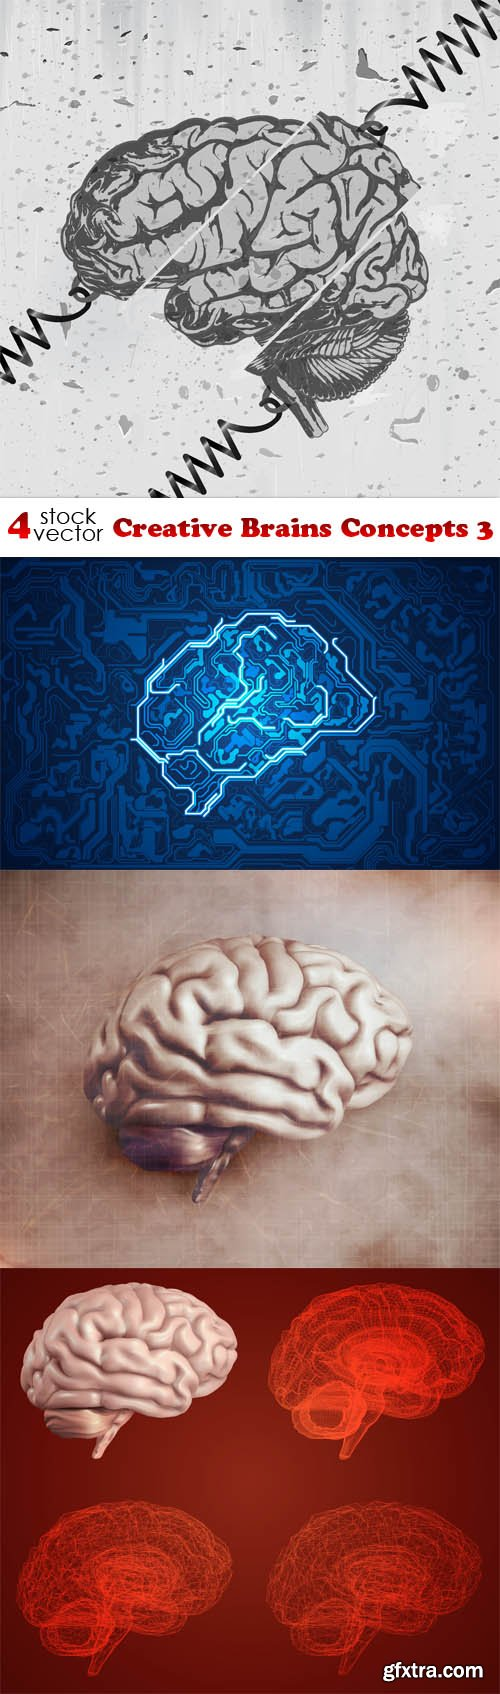 Vectors - Creative Brains Concepts 3